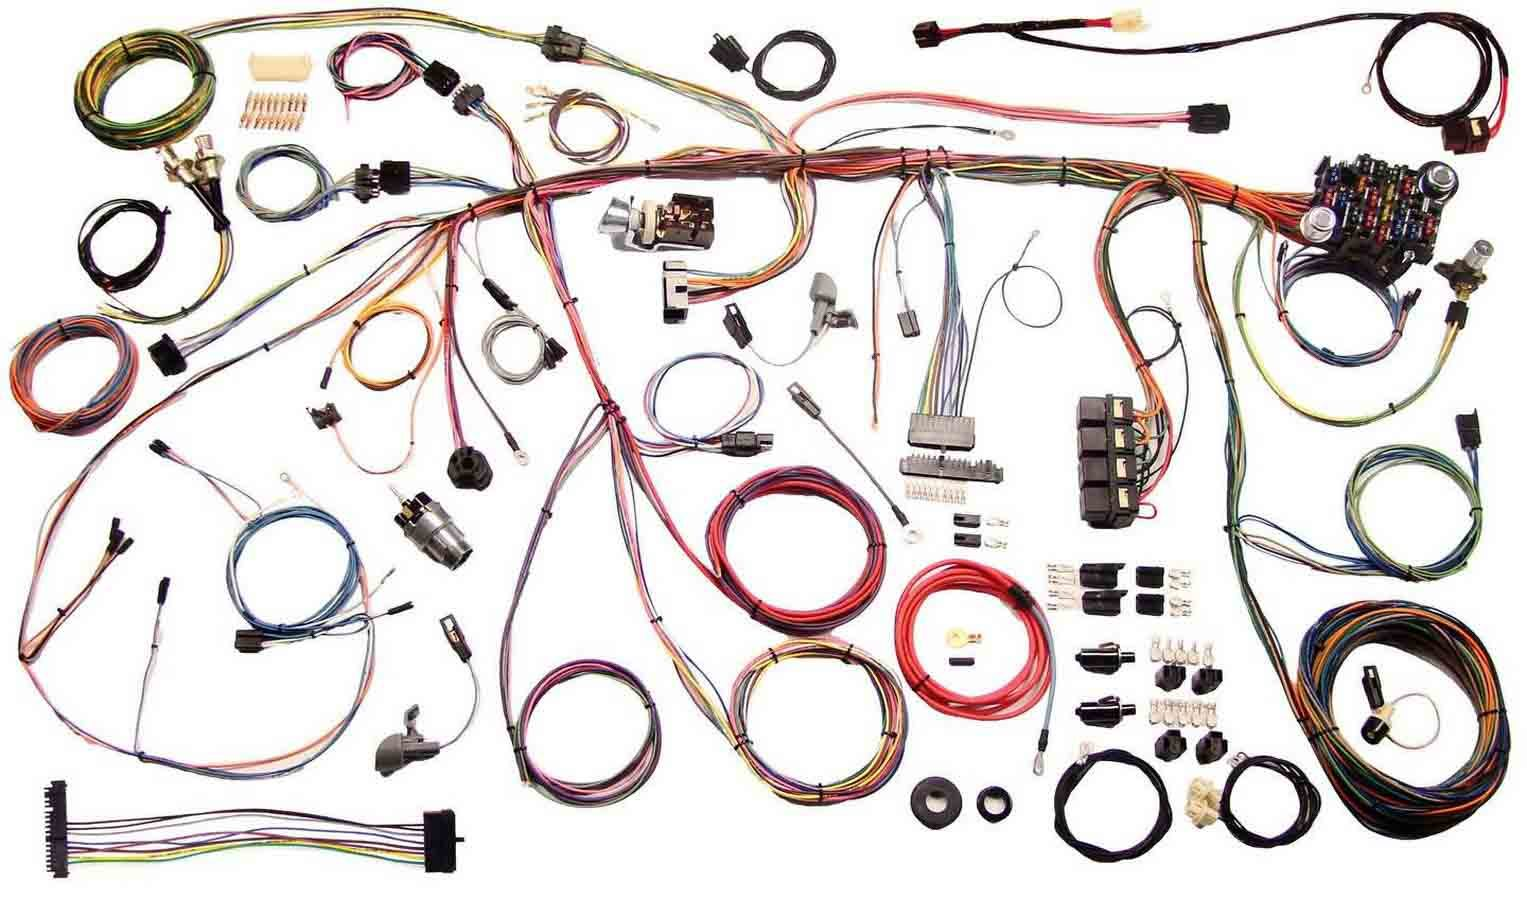 American Autowire 510243 Car Wiring Harness, Classic Update, Complete, Mustang 1970, Kit